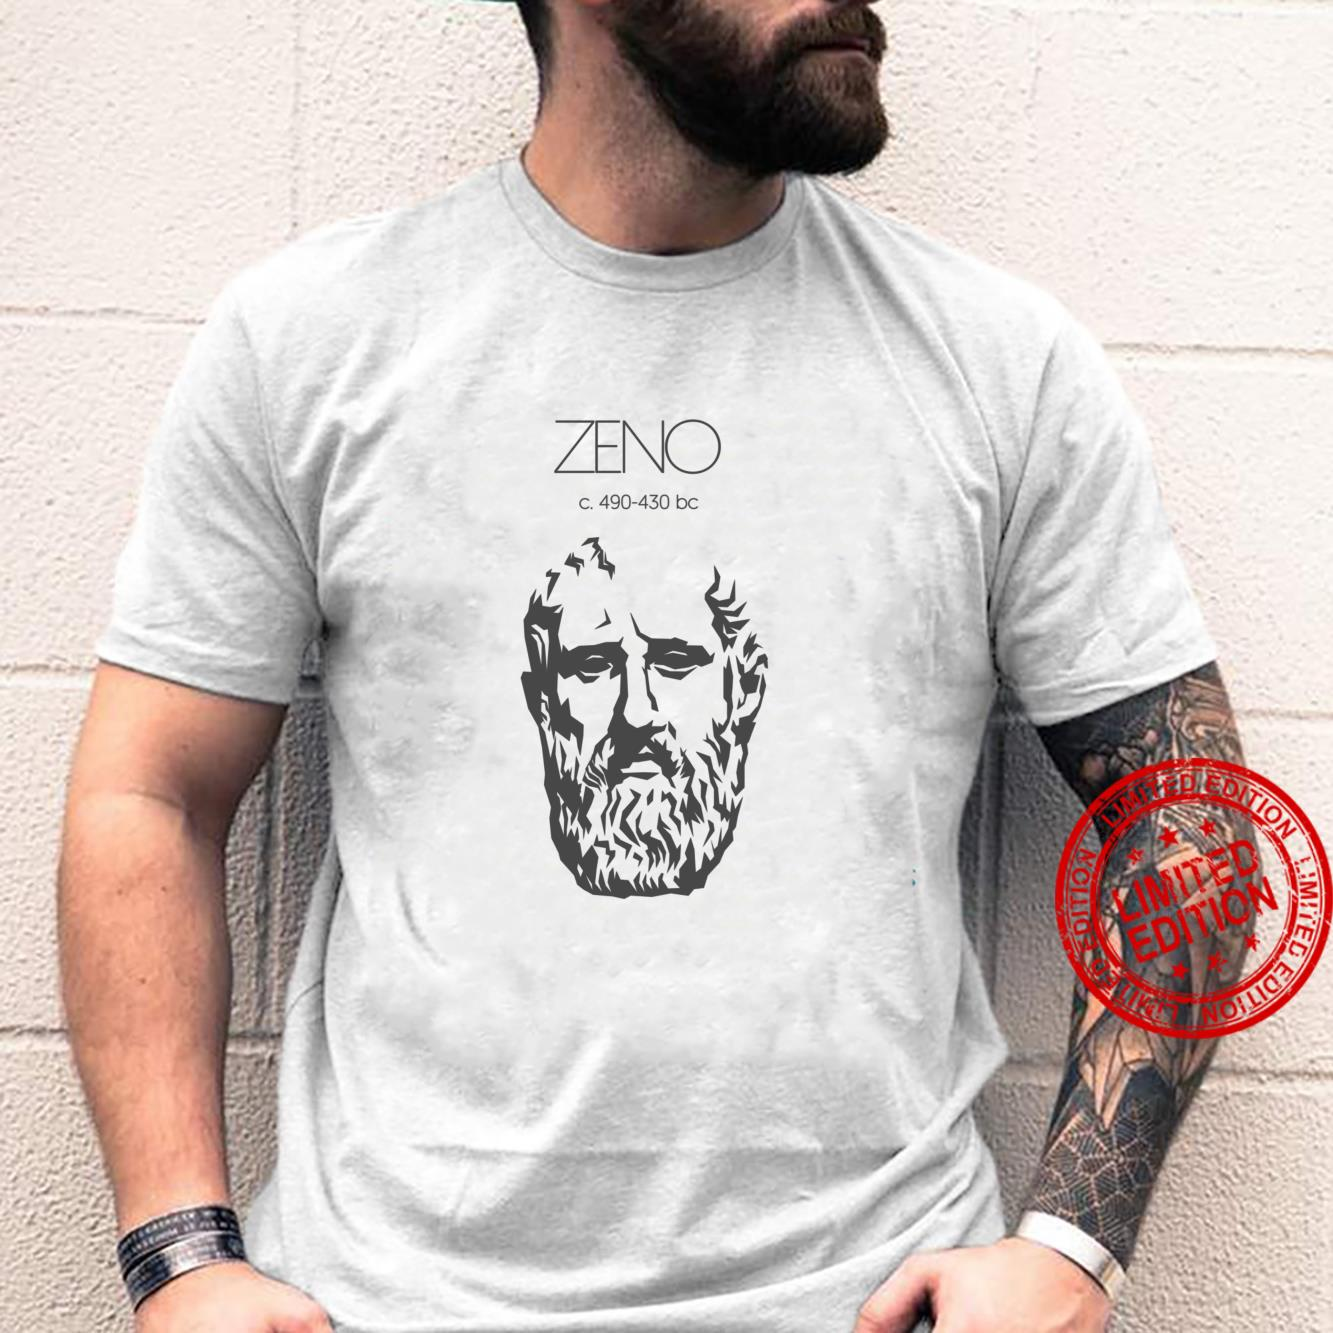 Zeno Ancient Greek Philosopher Shirt